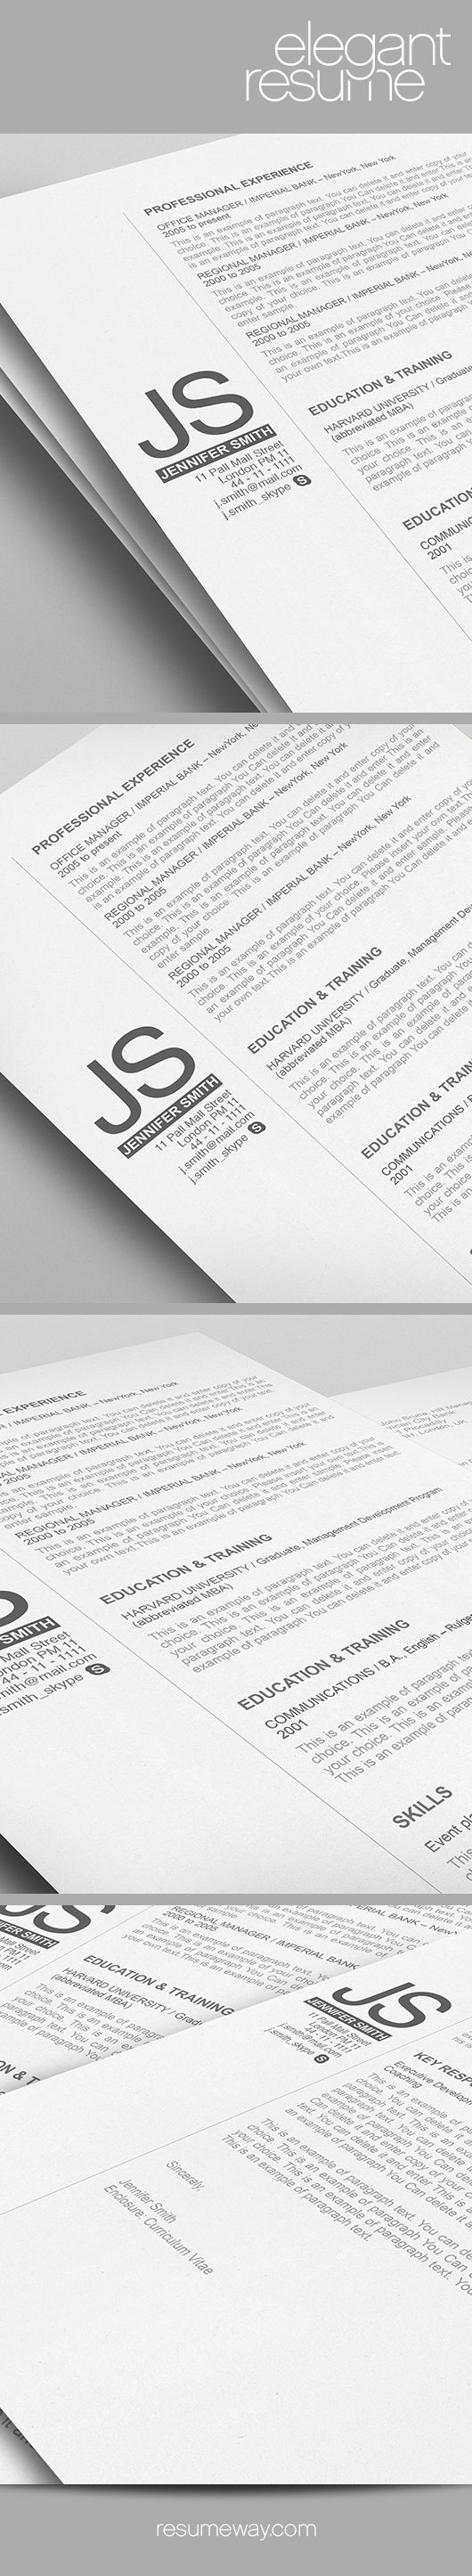 elegant resume template 110540 premium line of resume cover letter templates easy edit with ms word apple pages resume resumes resumeway - Microsoft Resume Template